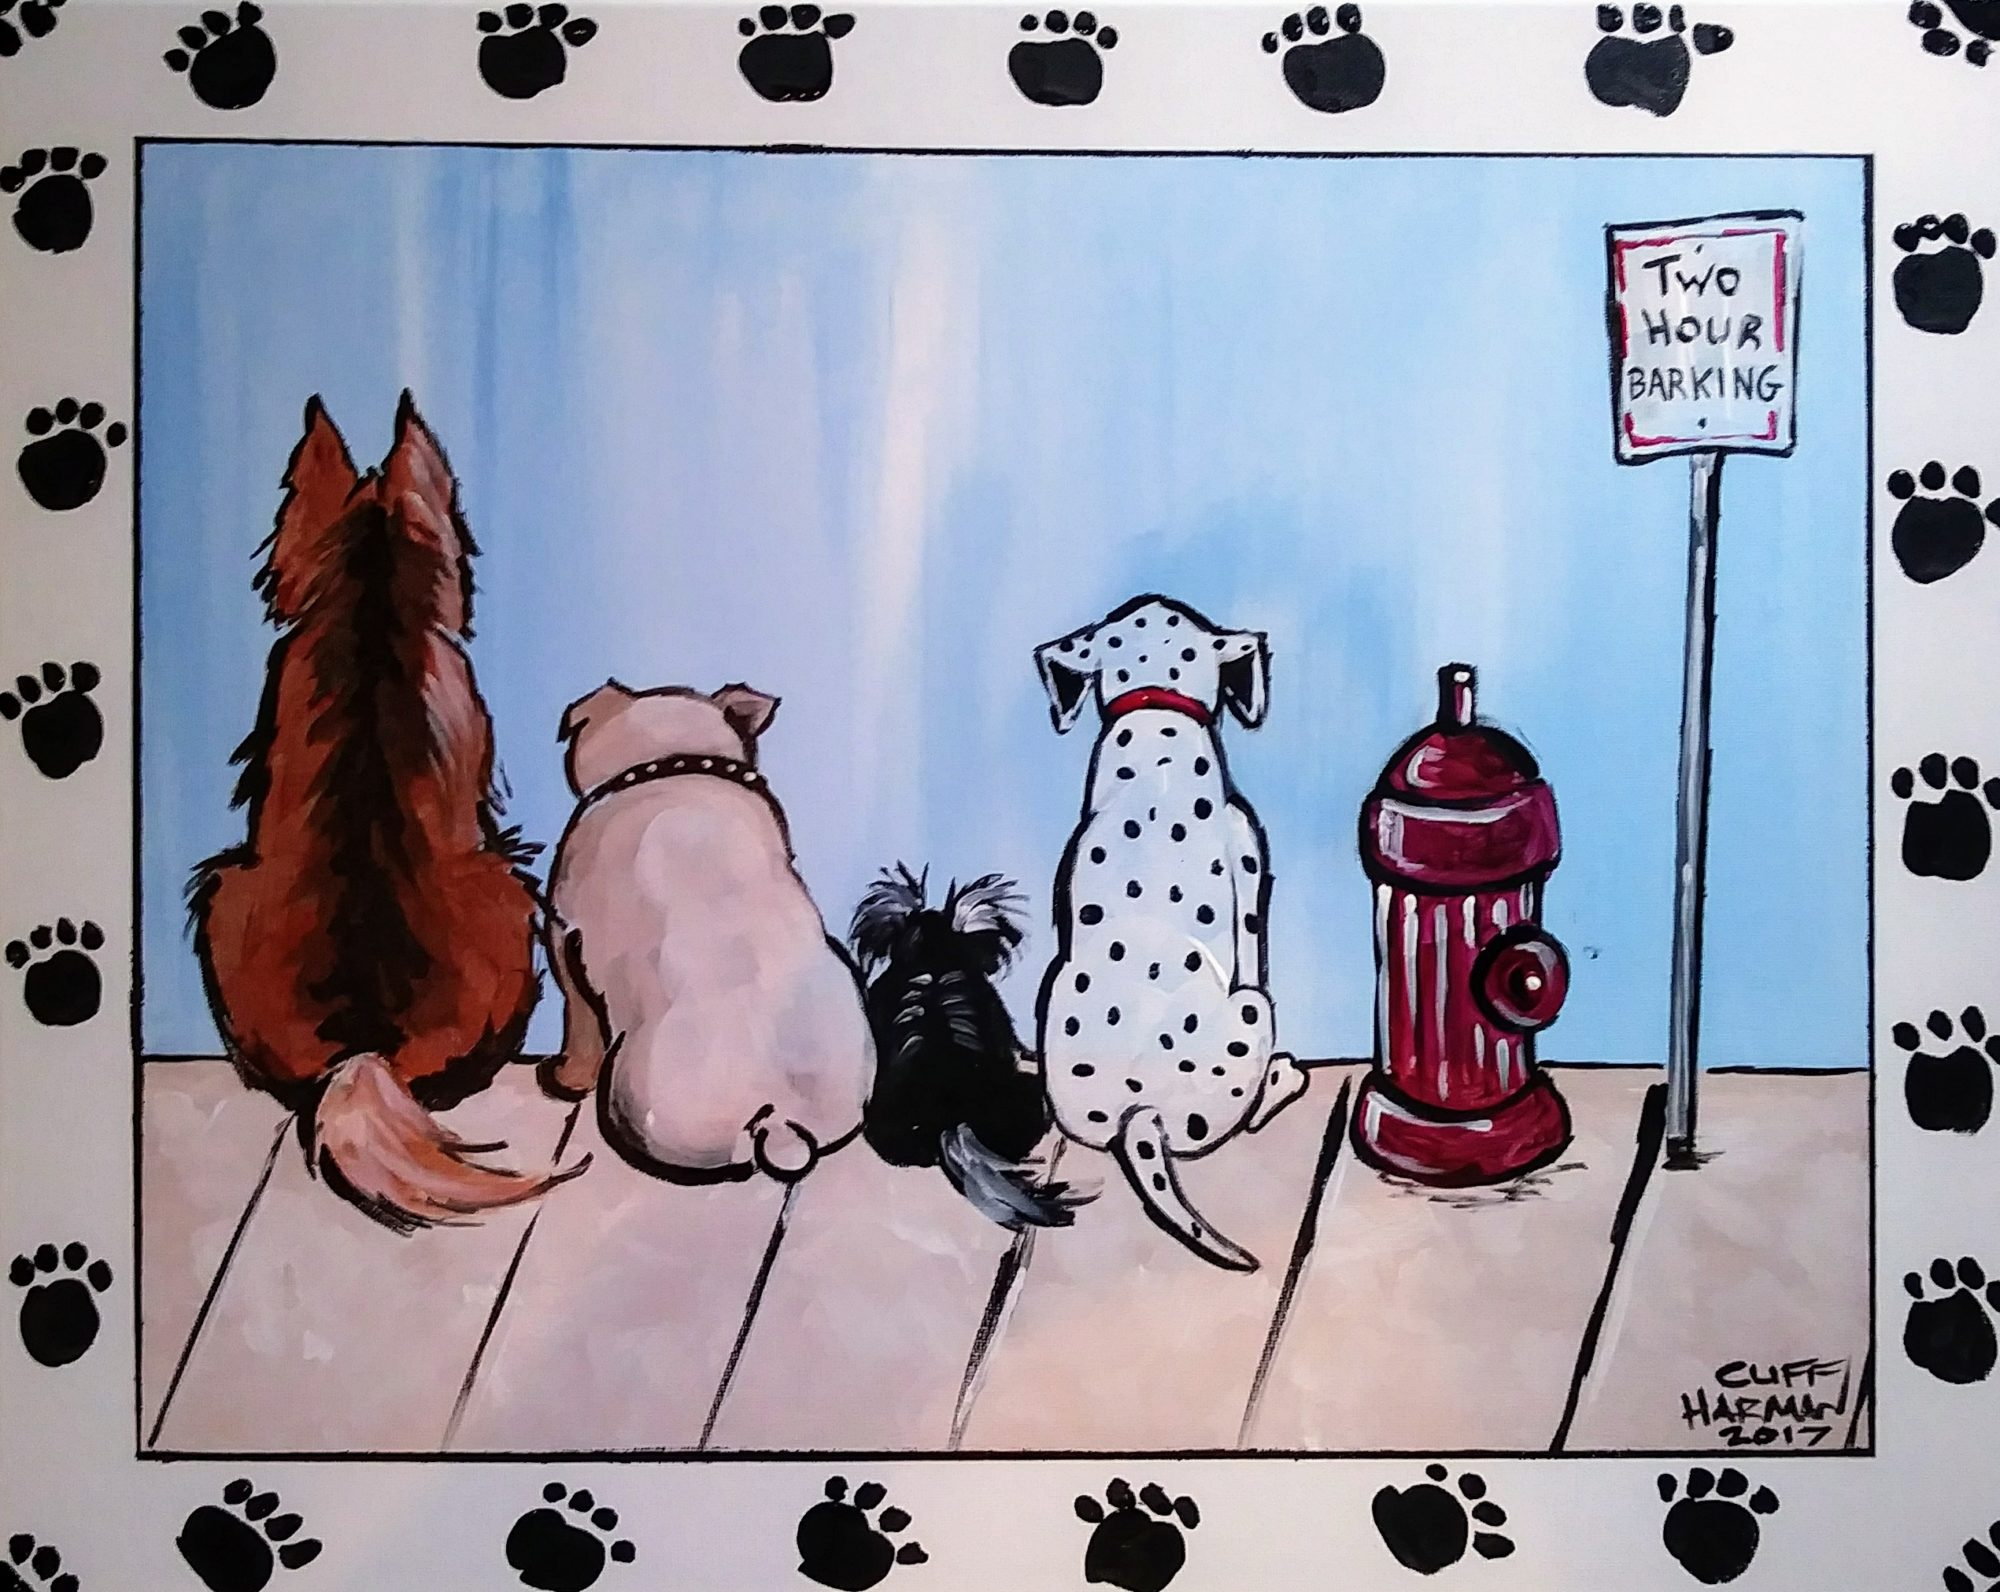 B6 Doggy Days - Sip and Paint Parties in Bartlett, IL